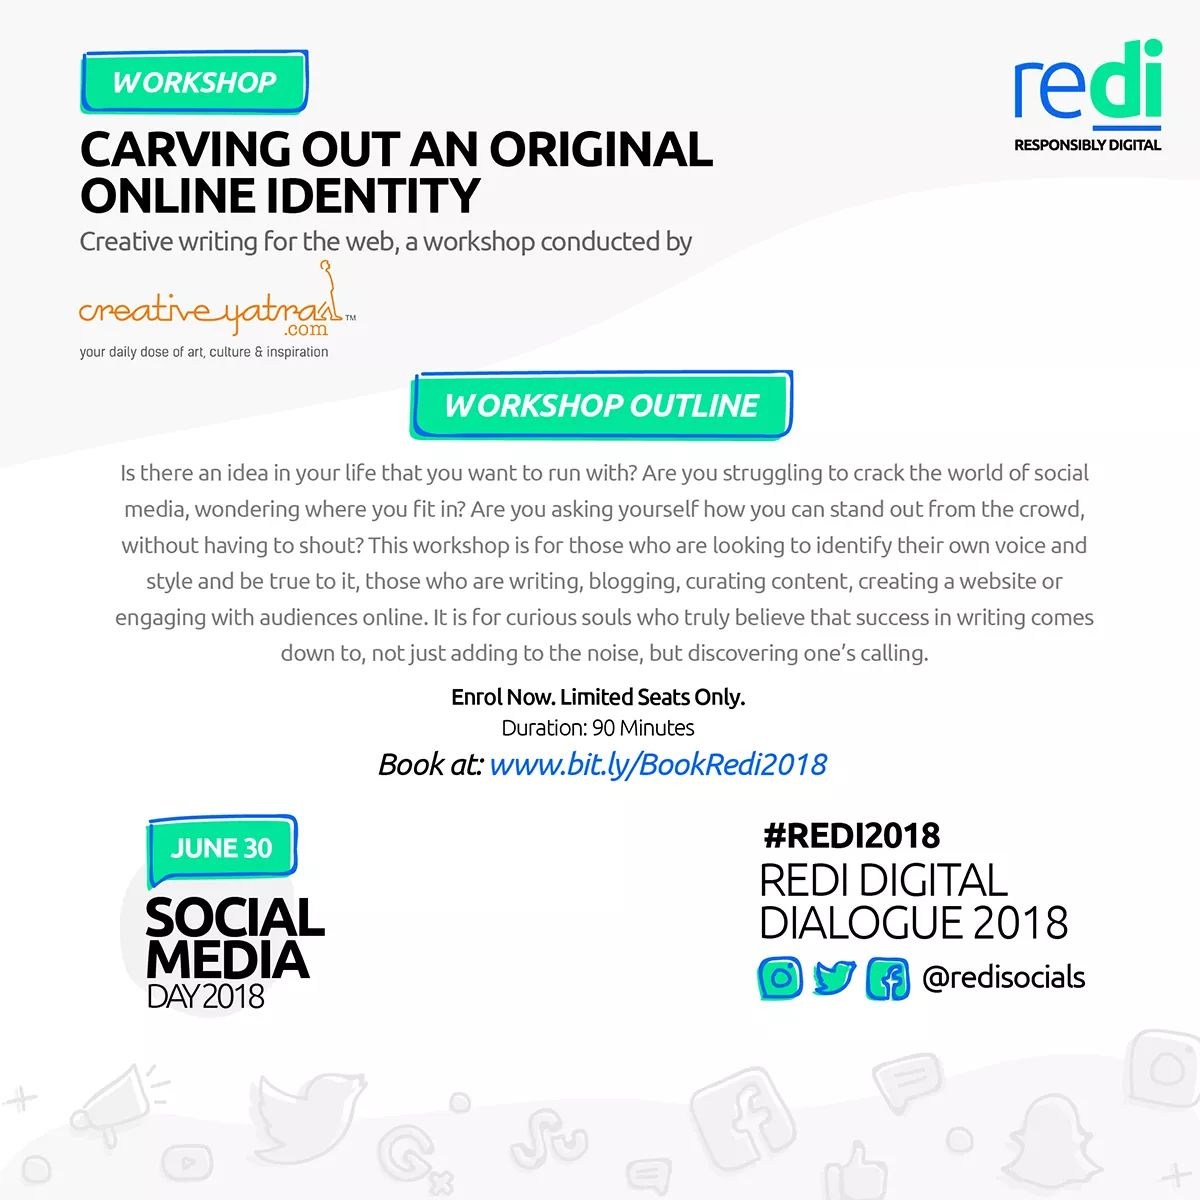 redi-2018-creative-writing-workshop-blogging